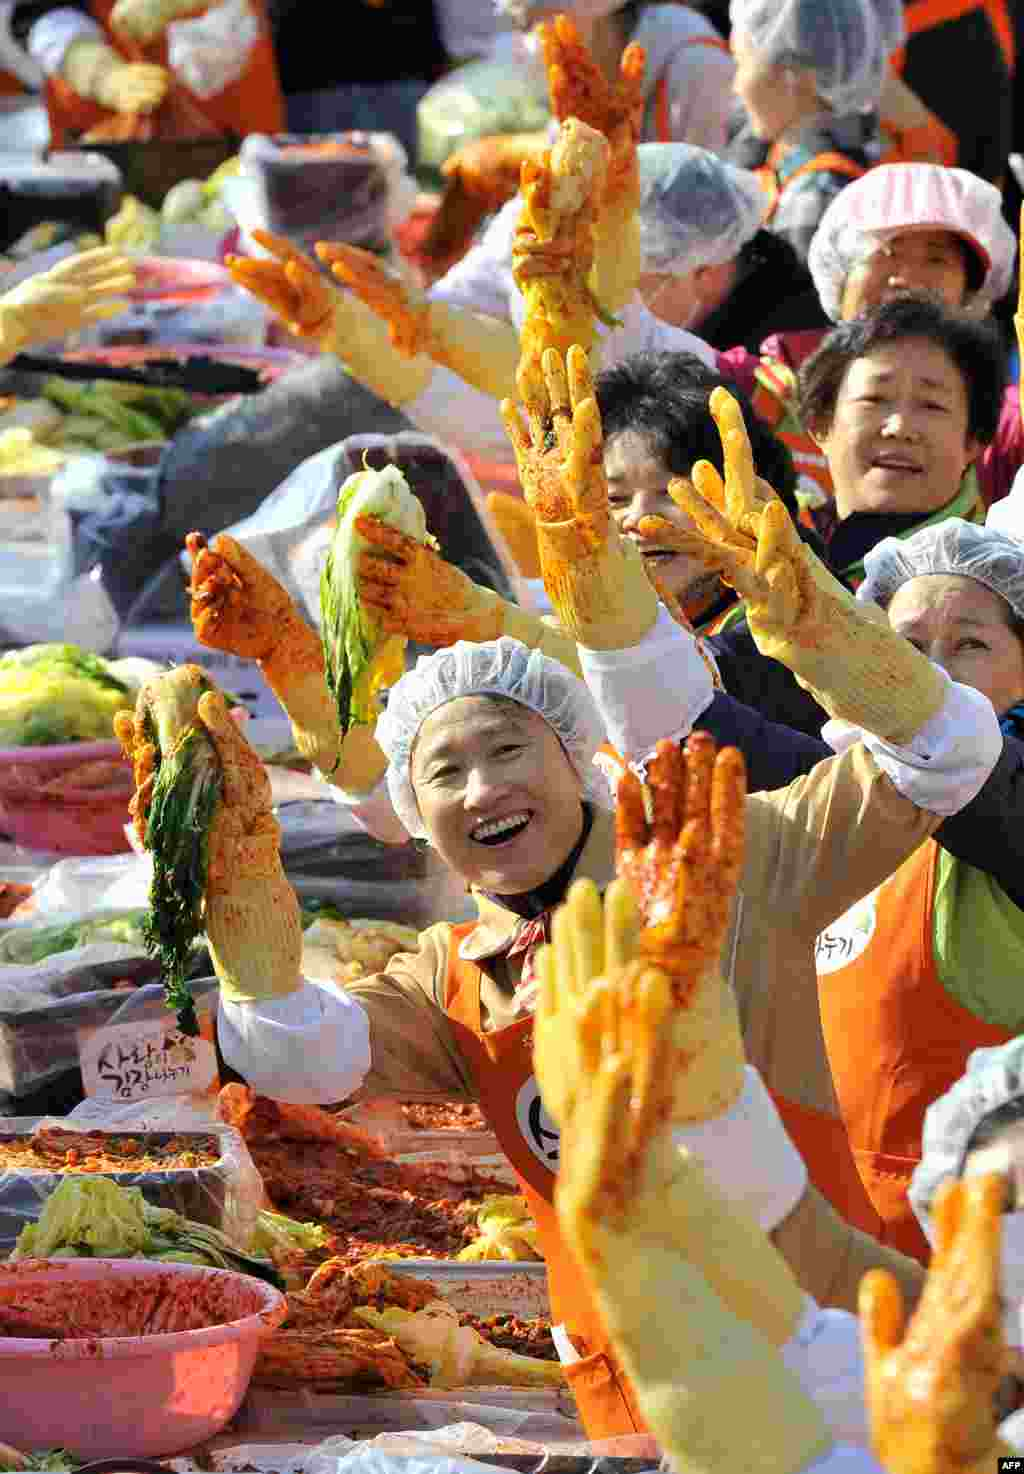 Volunteers pose as they make 140 tons of kimchi, a traditional dish of spicy fermented cabbage and radishes, in a park in Seoul, South Korea. City officials will hand out kimchi to about 14,000 poor households in an event marking the start of the winter season. (AFP/Jung Yeon-Je)